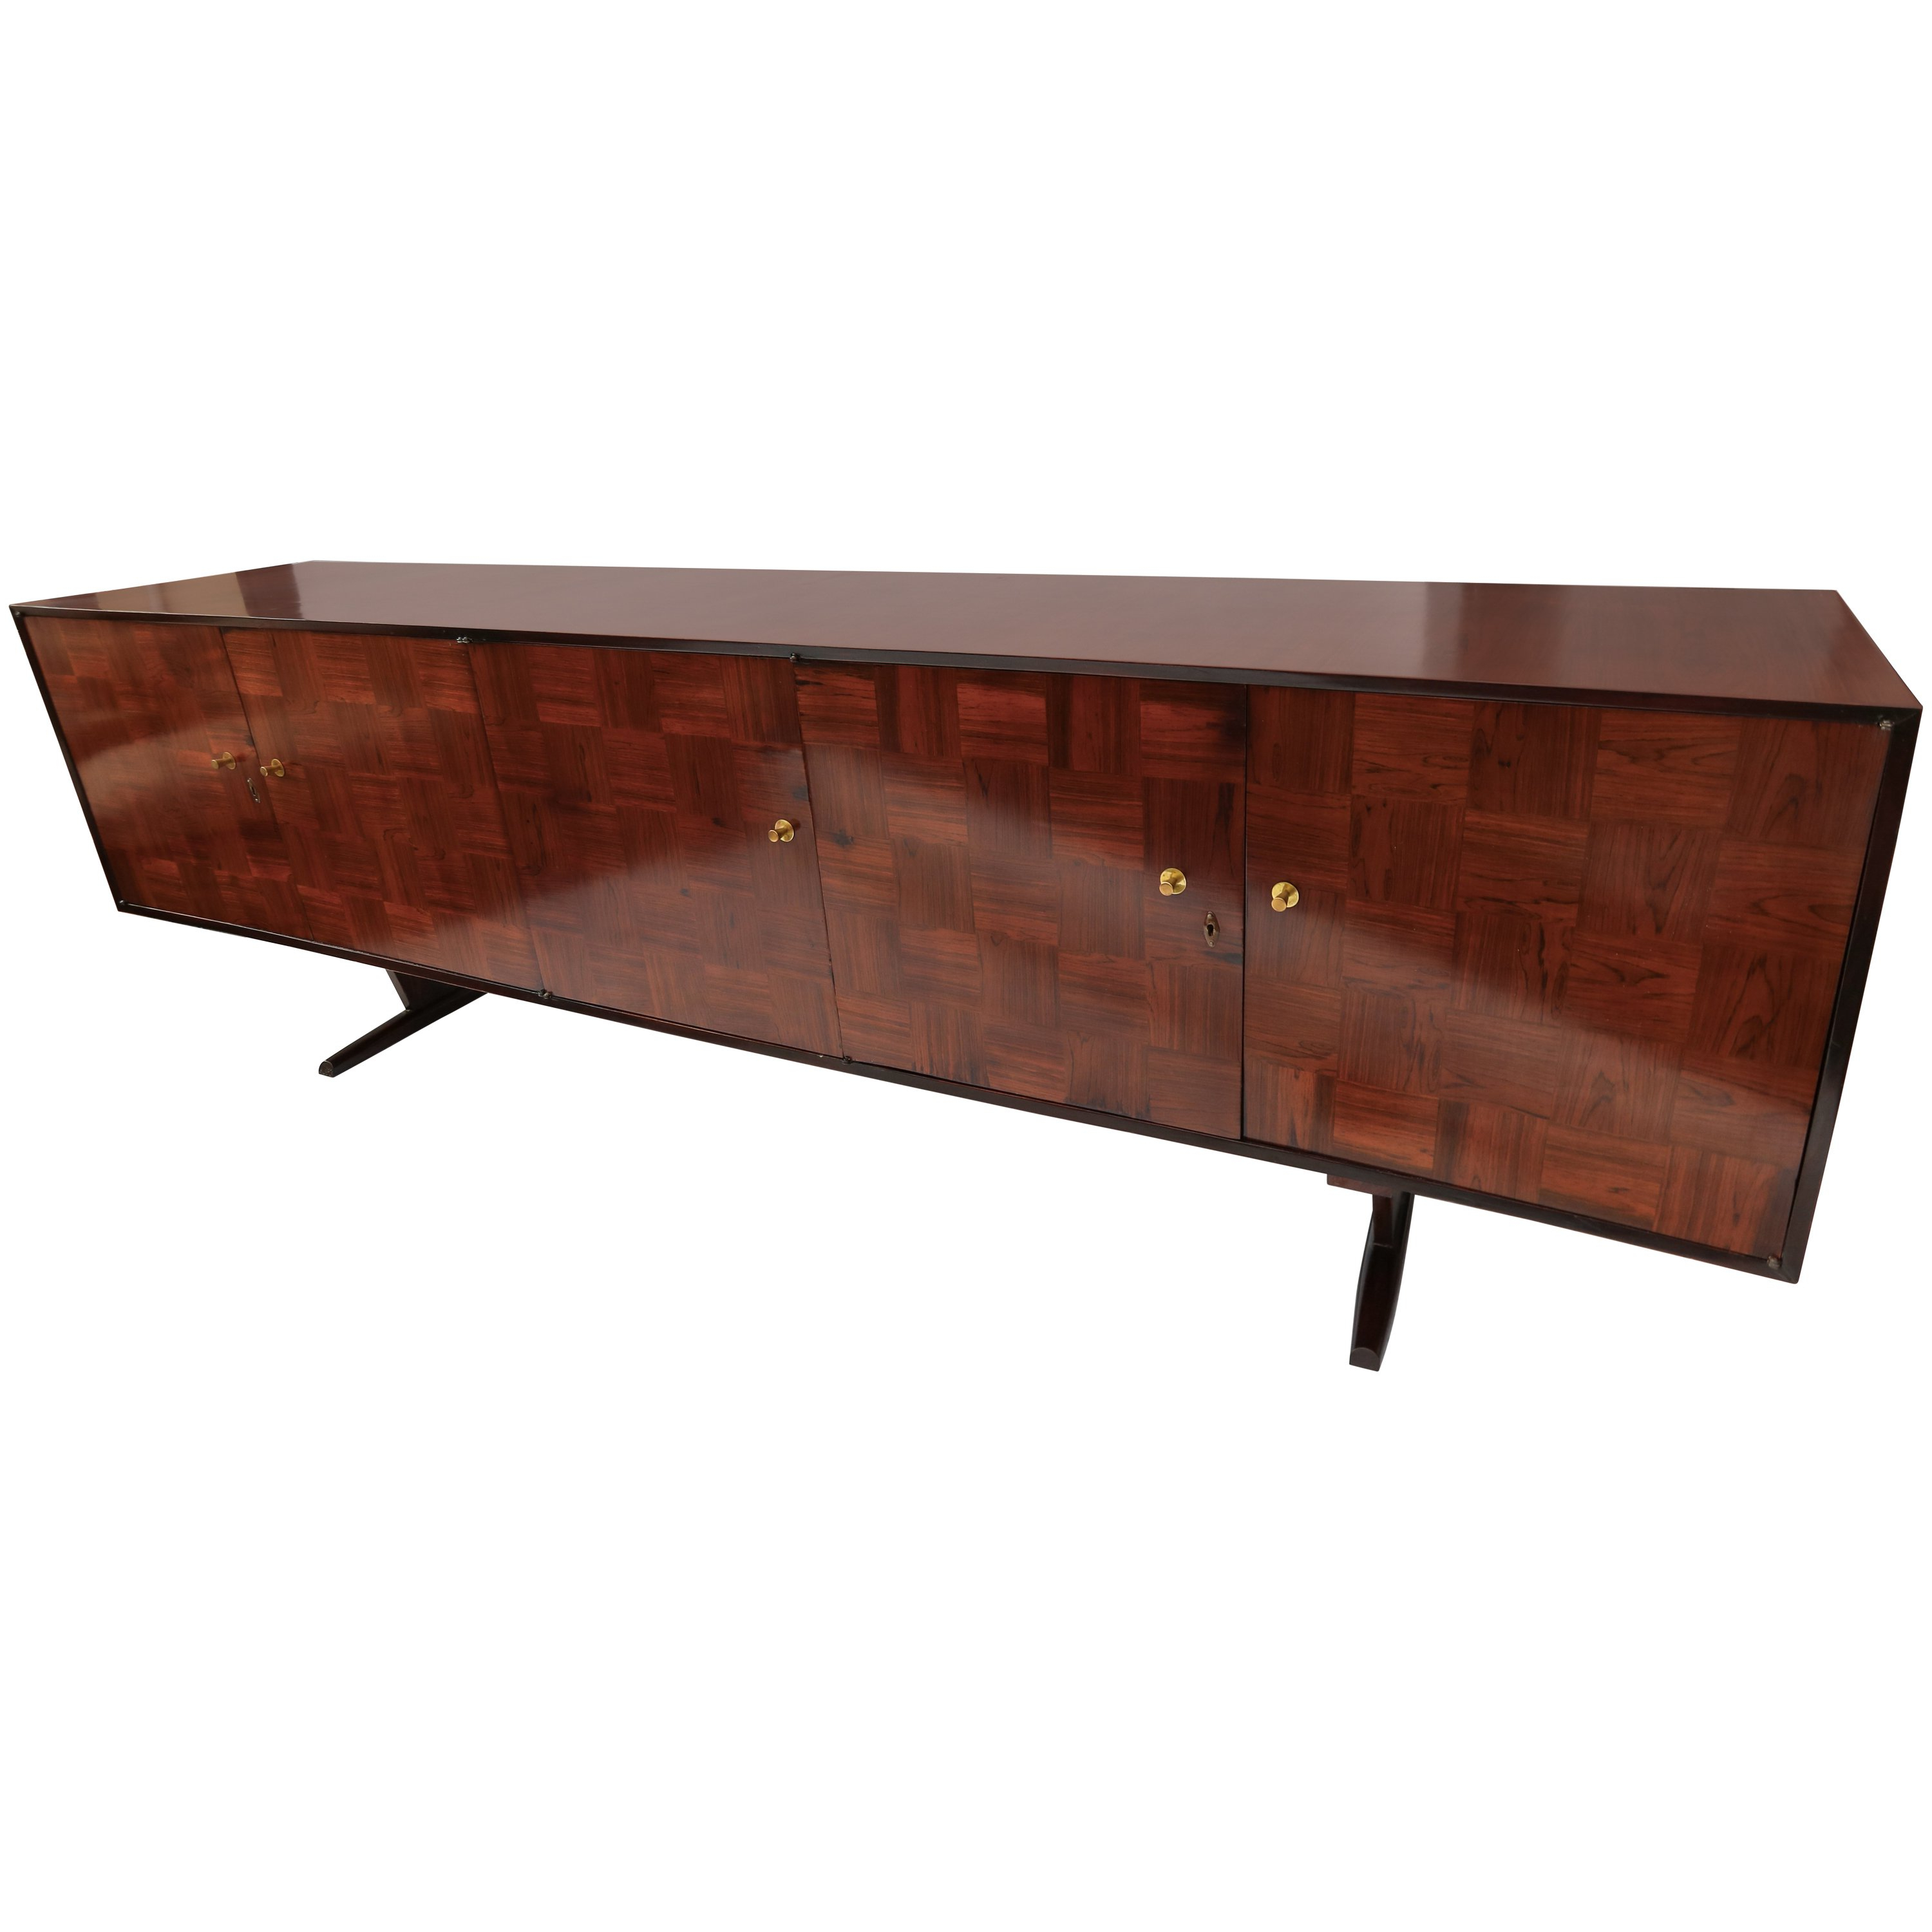 Popular Parquet Sideboards For Scapinelli 1960s Brazilian Jacaranda Parquet Sideboard For Sale At (View 18 of 20)